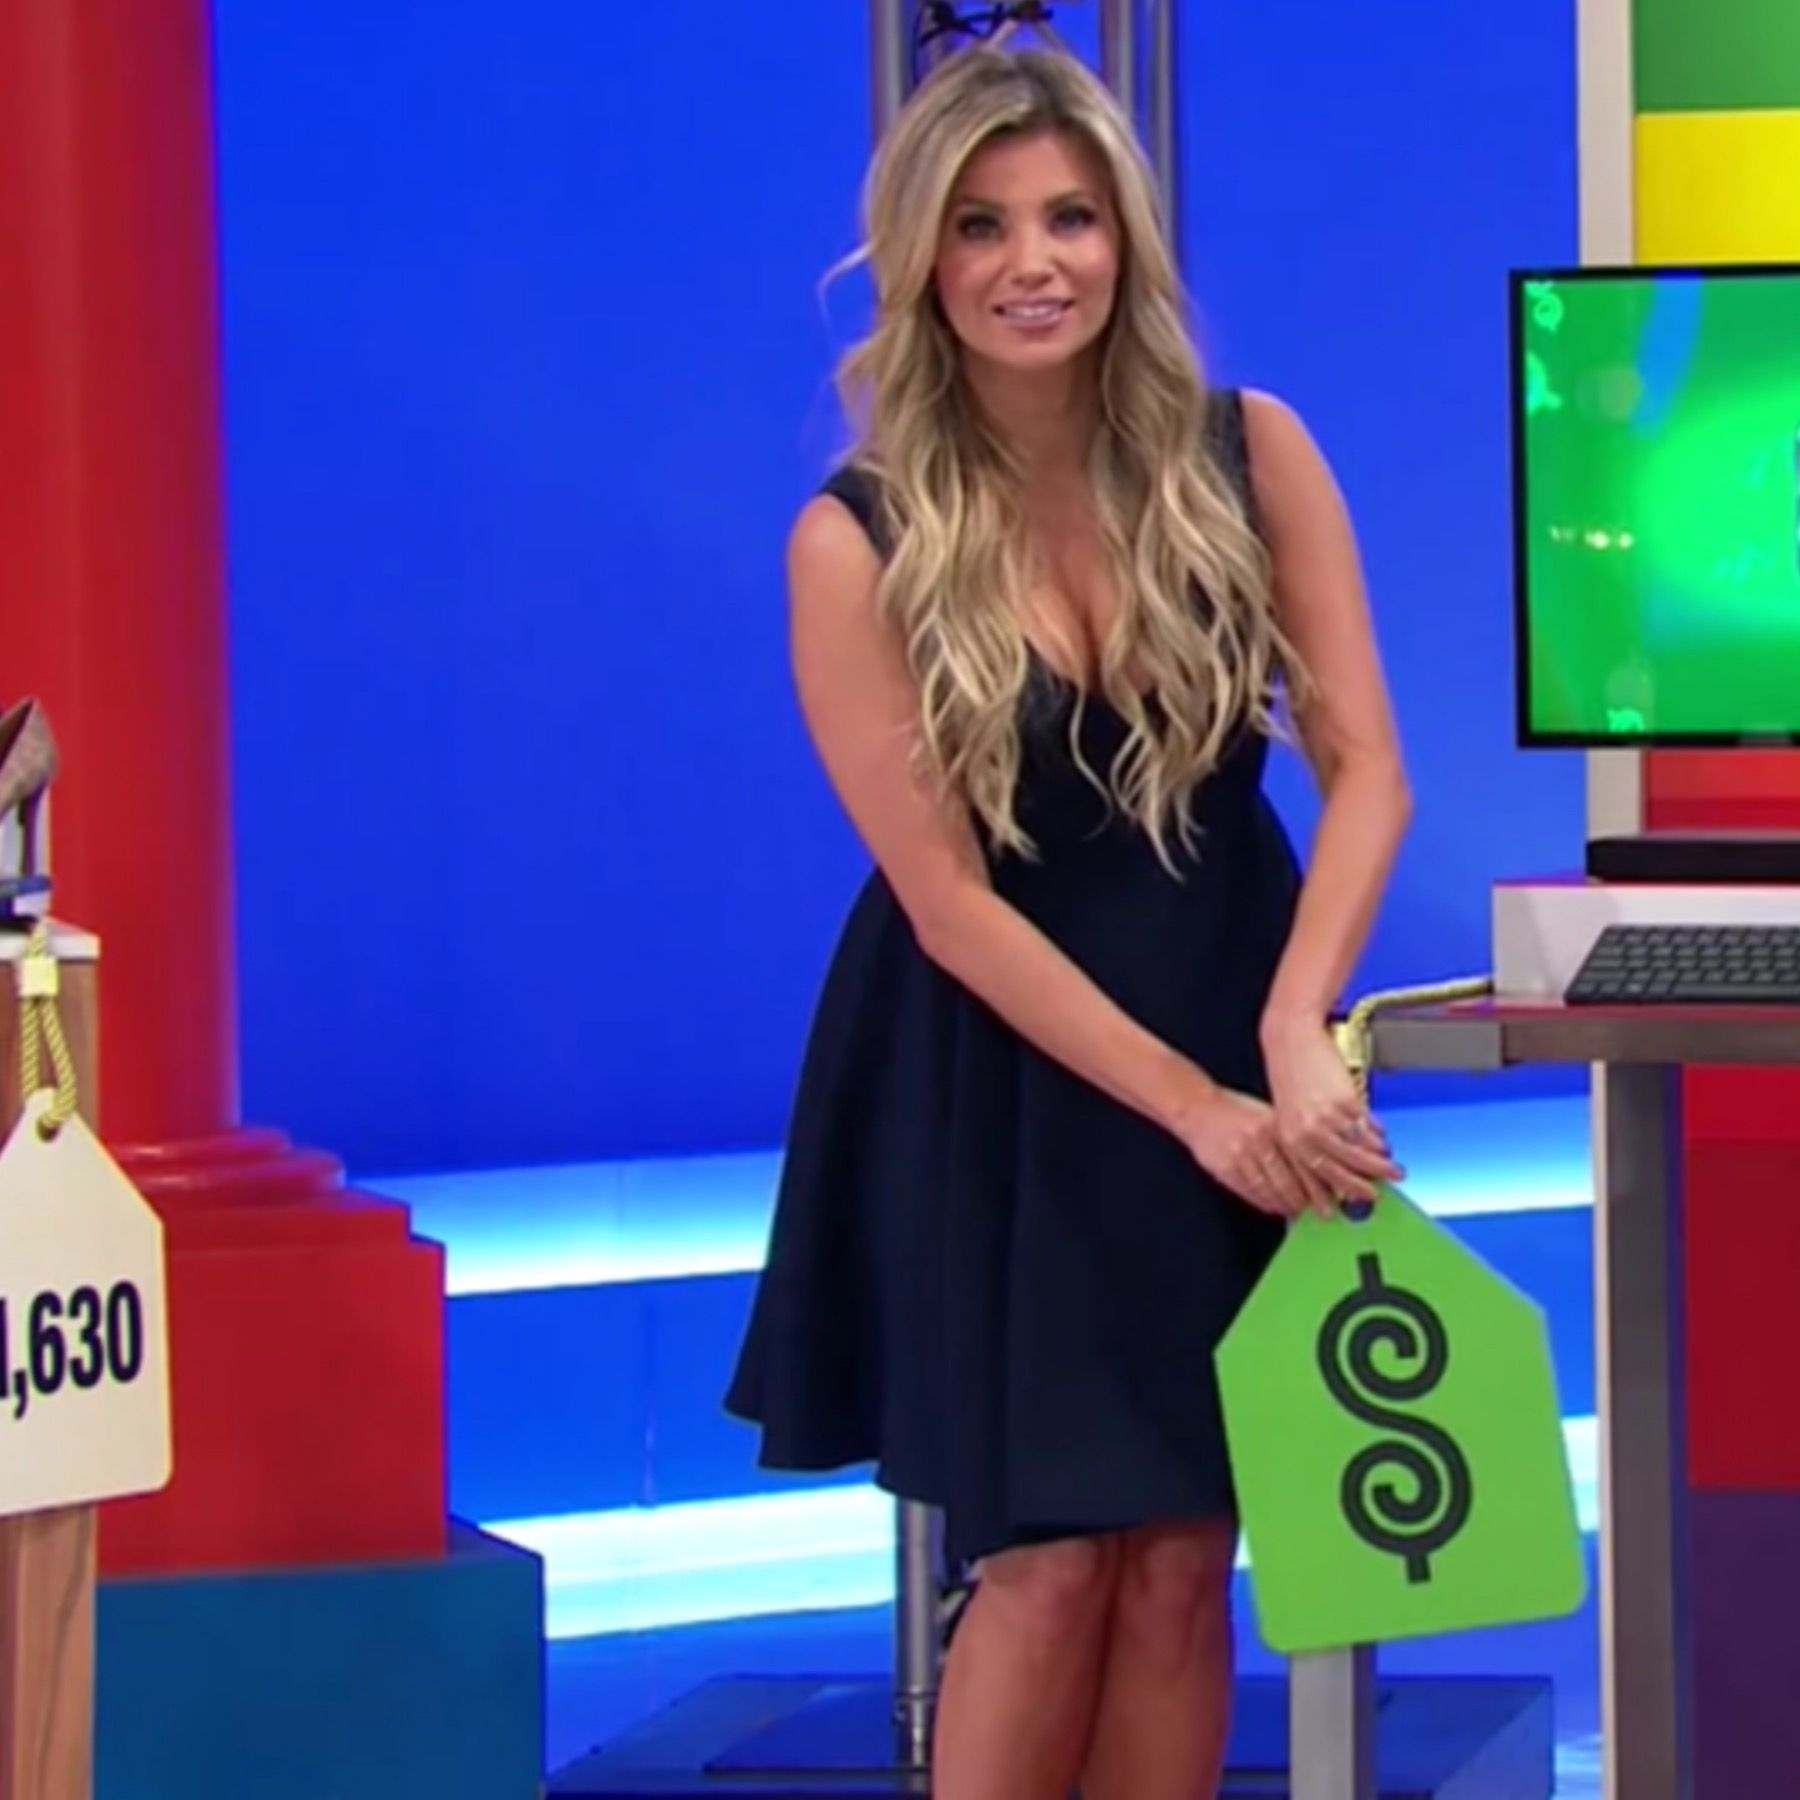 Amber Lancaster From The Price Is Right amber lancaster - the price is right (3/28/2019) ♥️ in